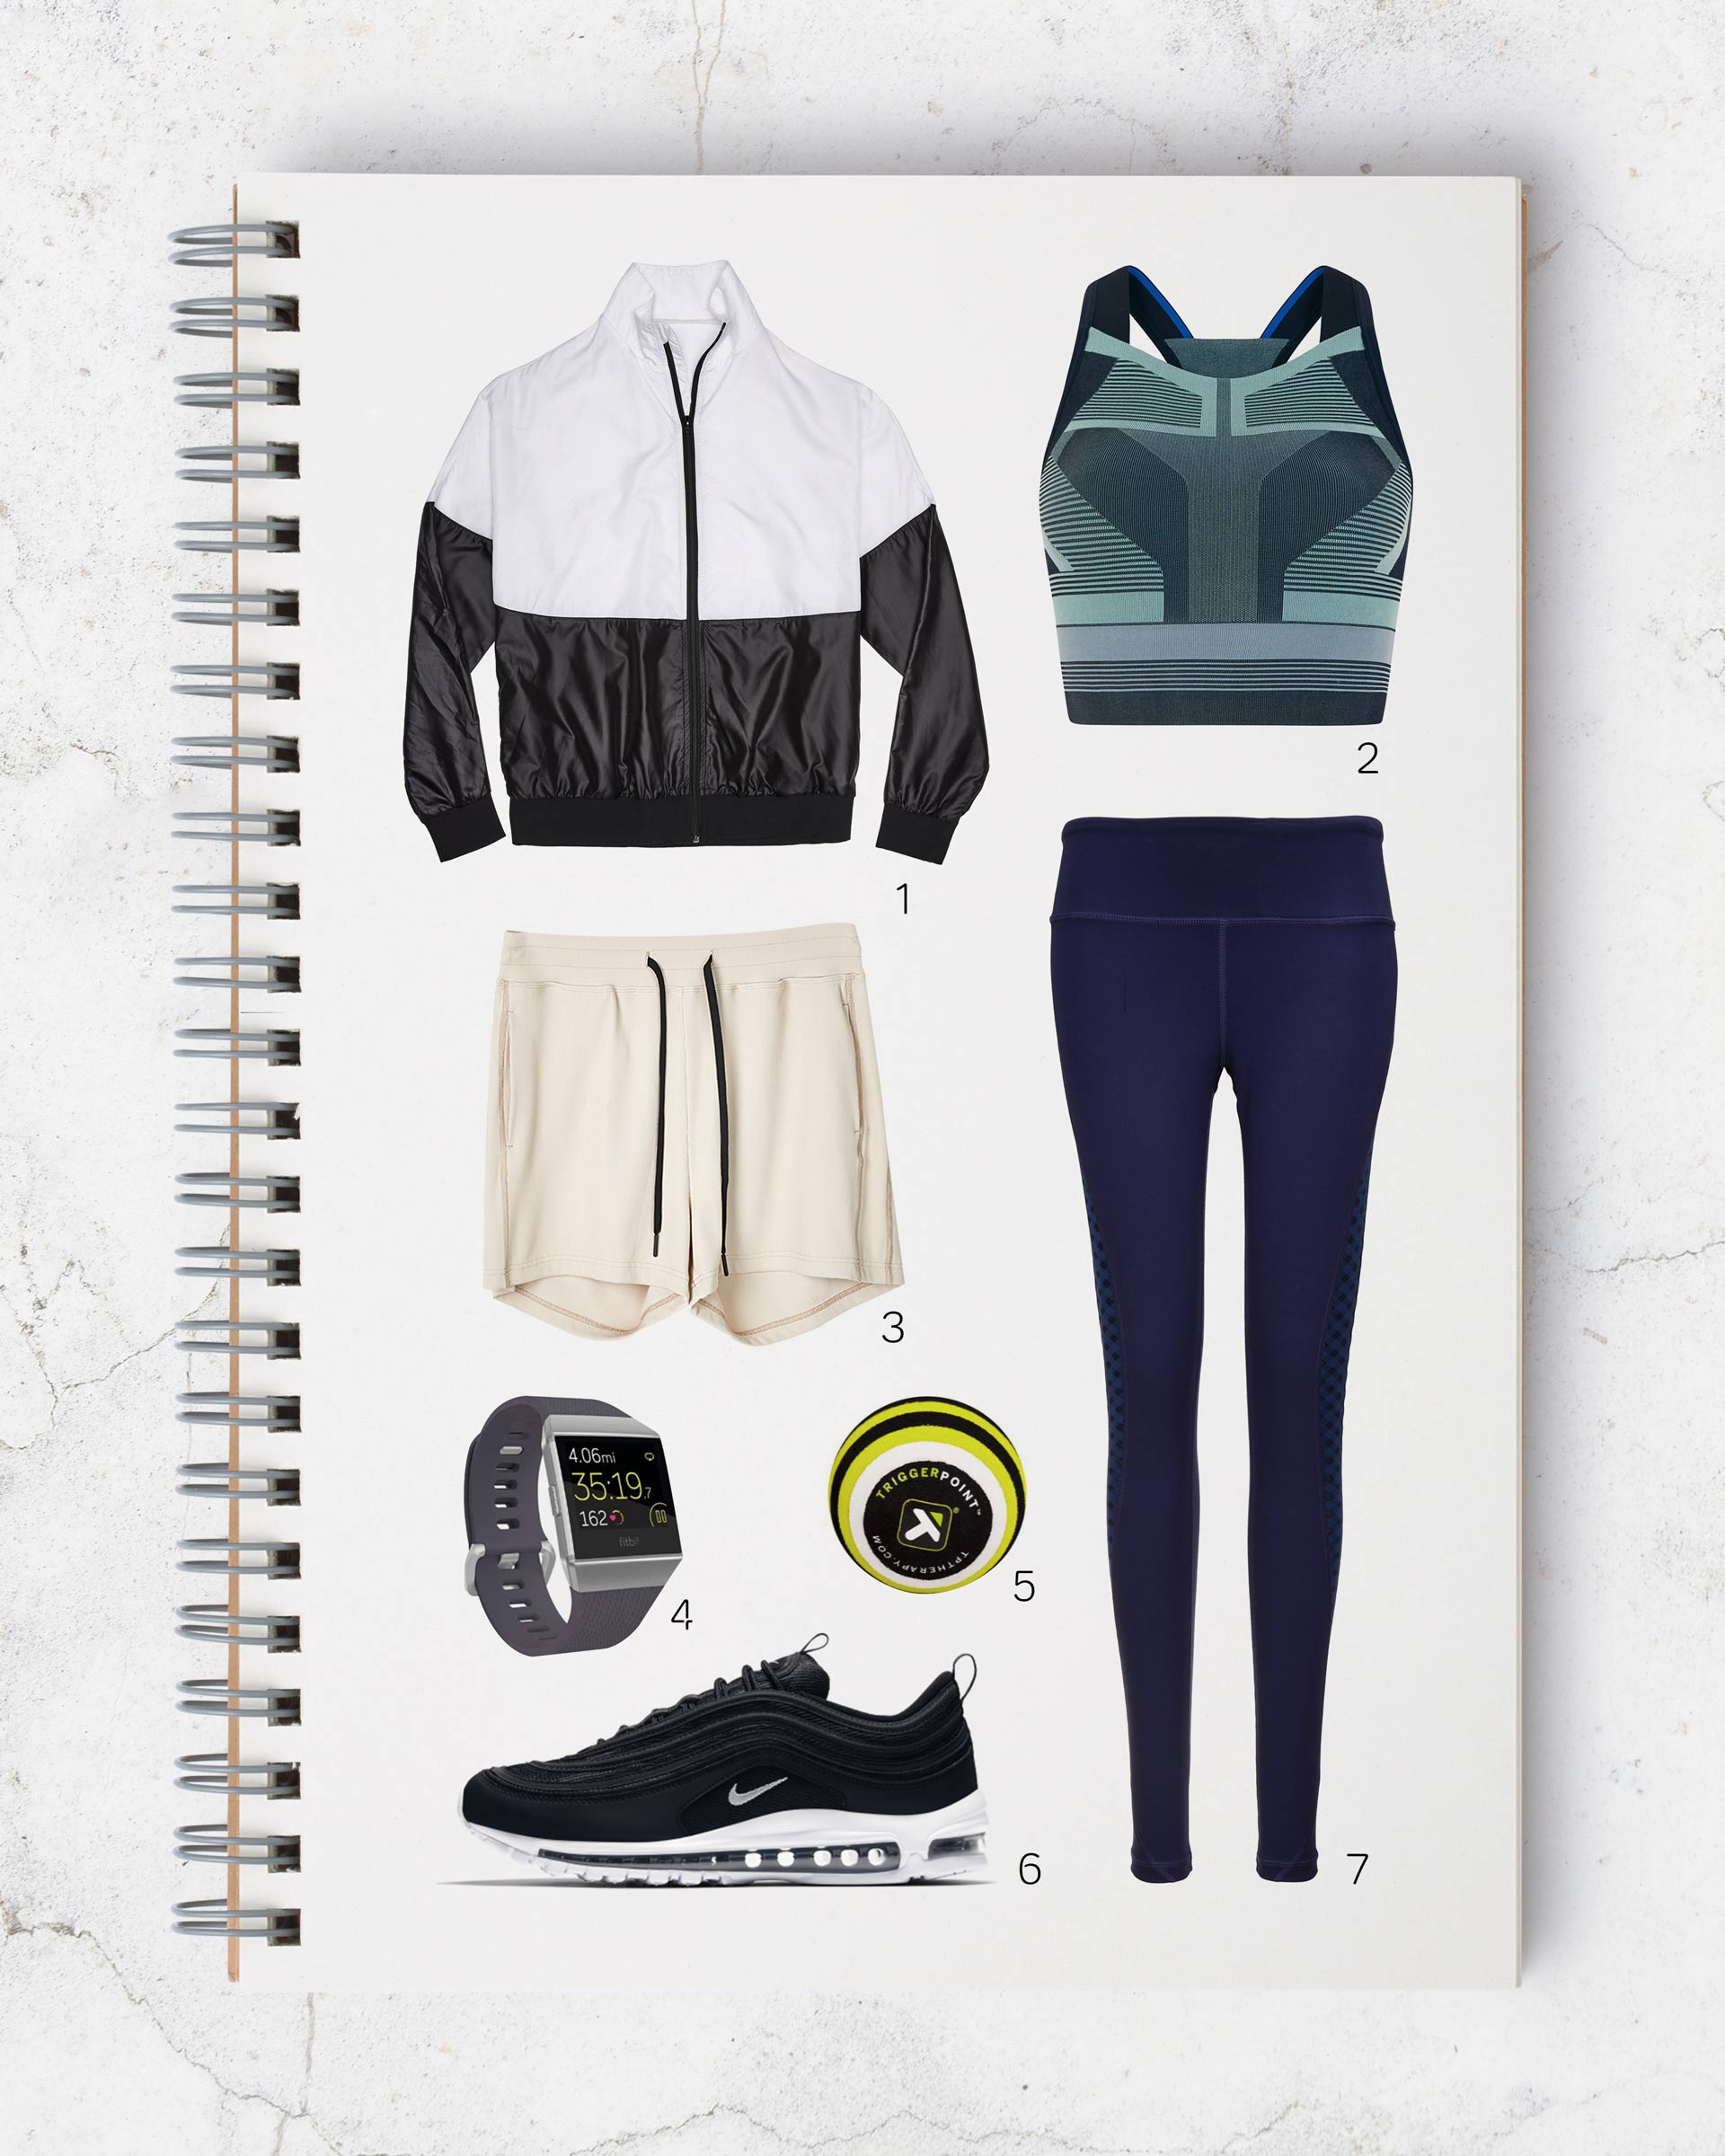 Morgan Guth – Pure Yoga teacher and founder of The Well Dressed Workout – shares her top athleisure picks